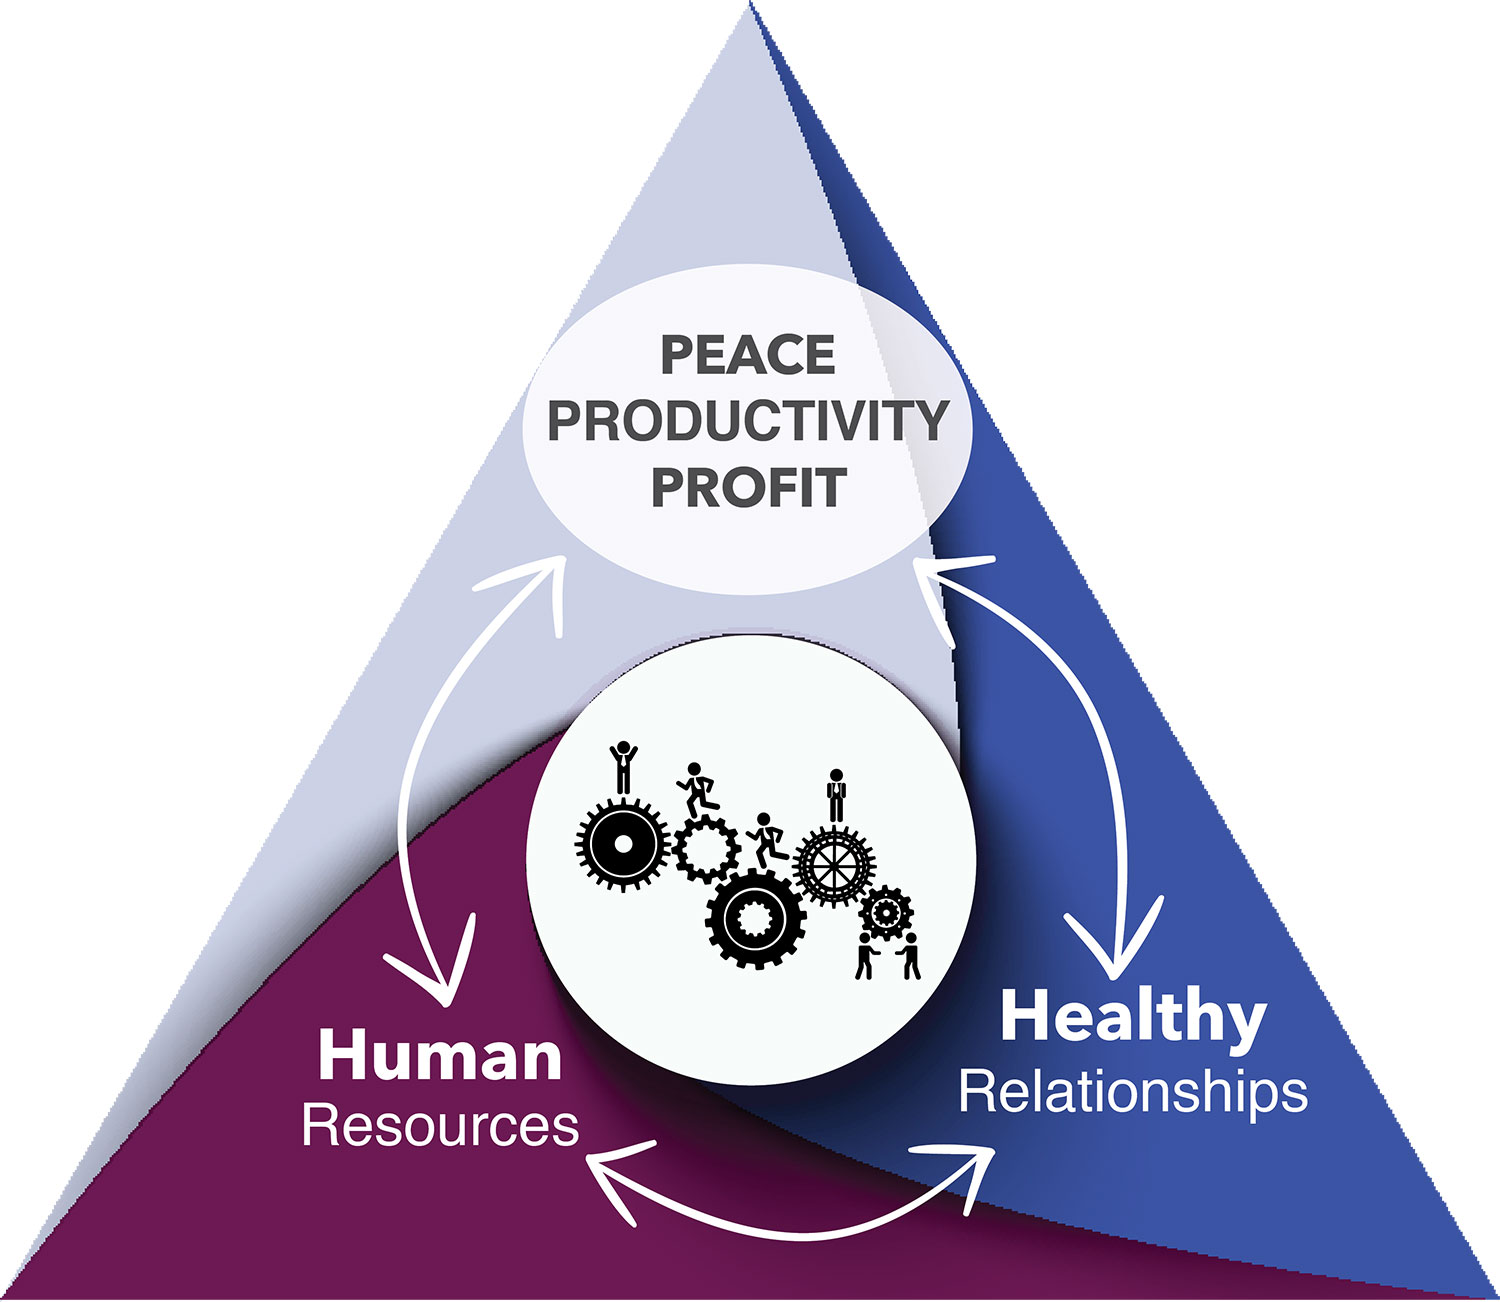 Peace Productivity Profit